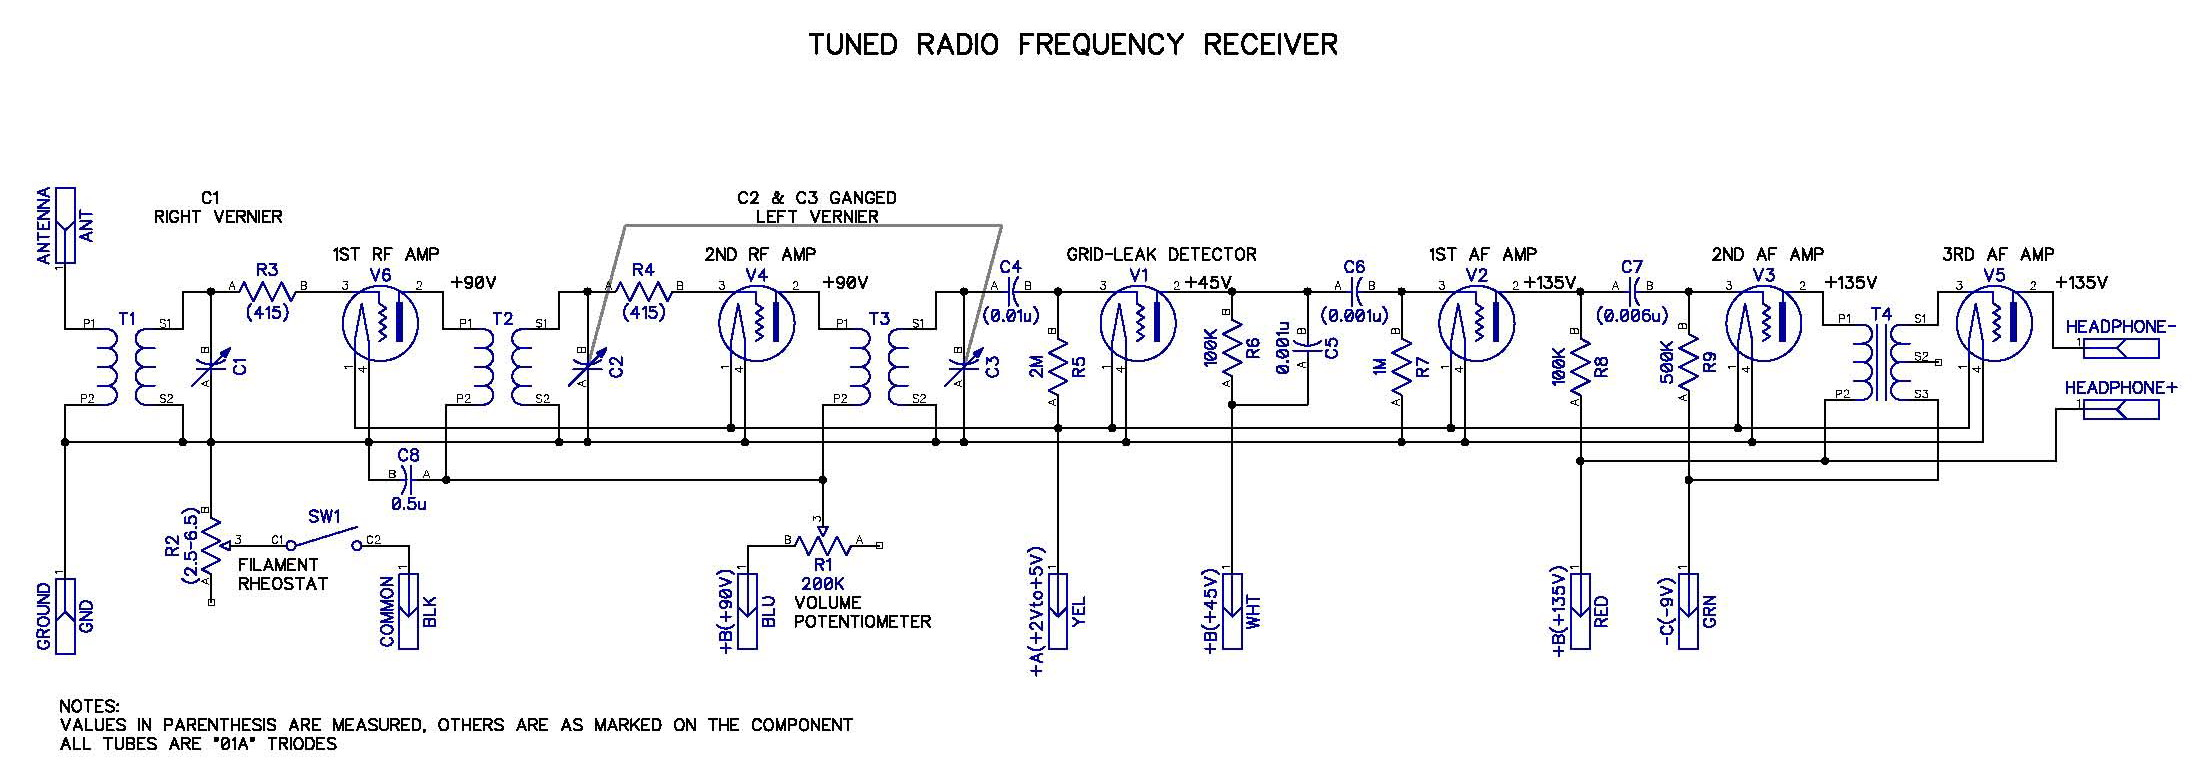 atwater kent model 20 schematic  | theradioboard.com